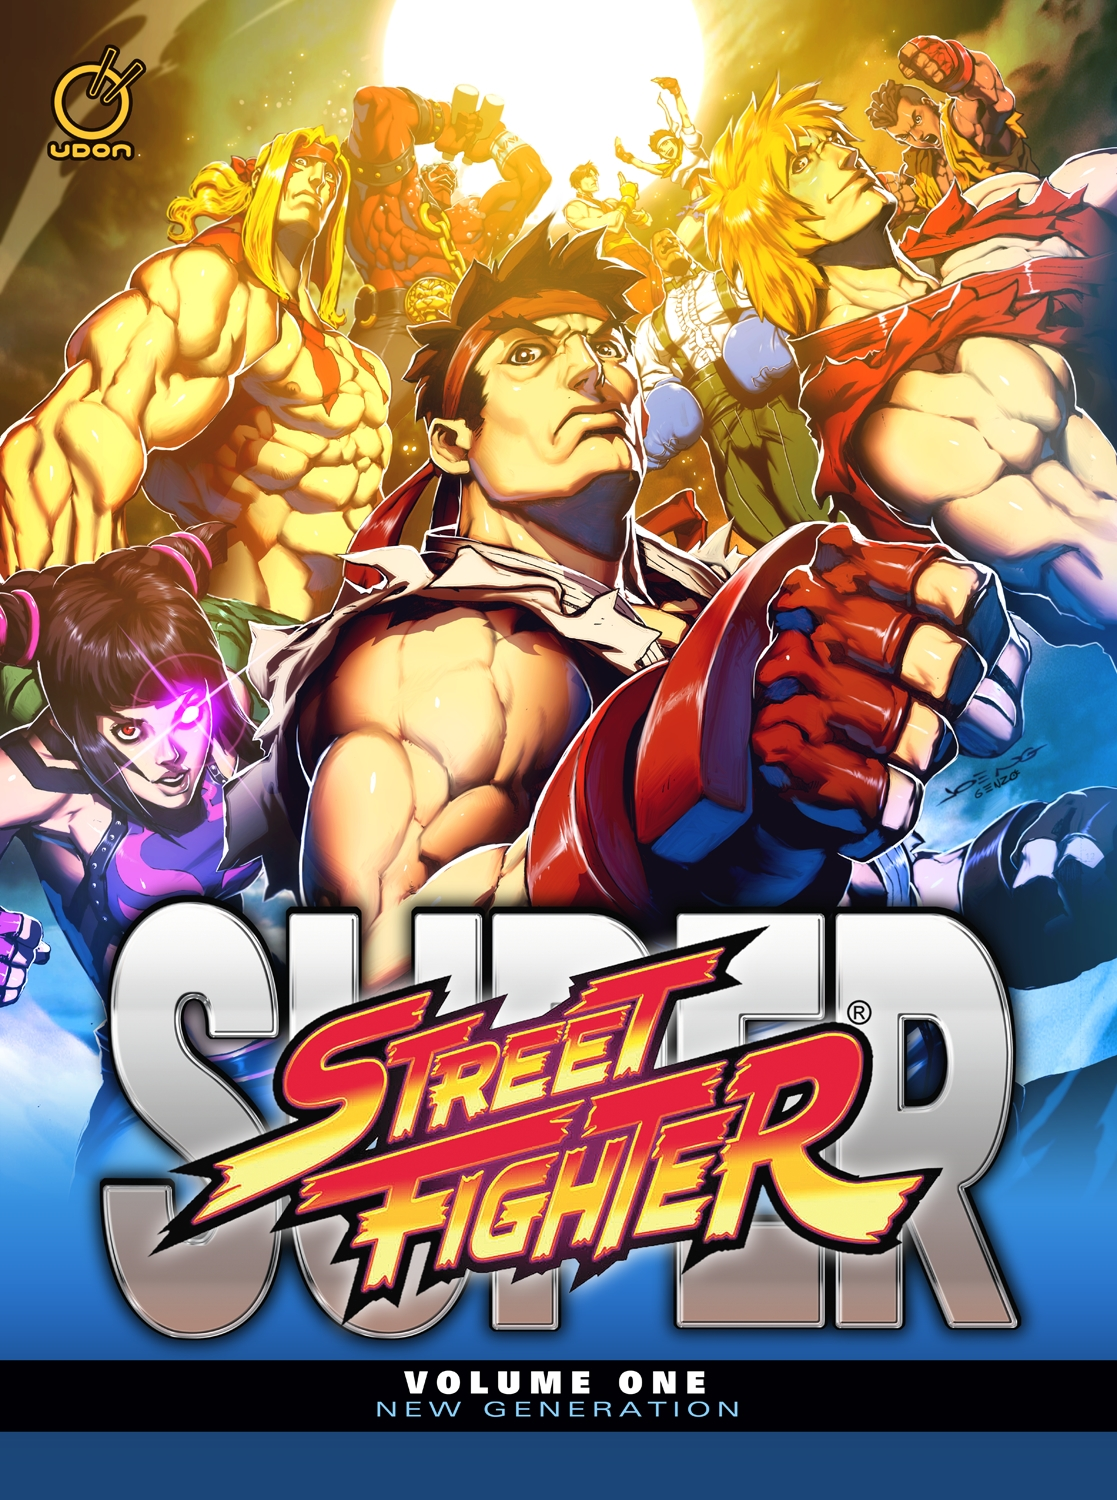 Super Street Fighter Volume One- New Generation